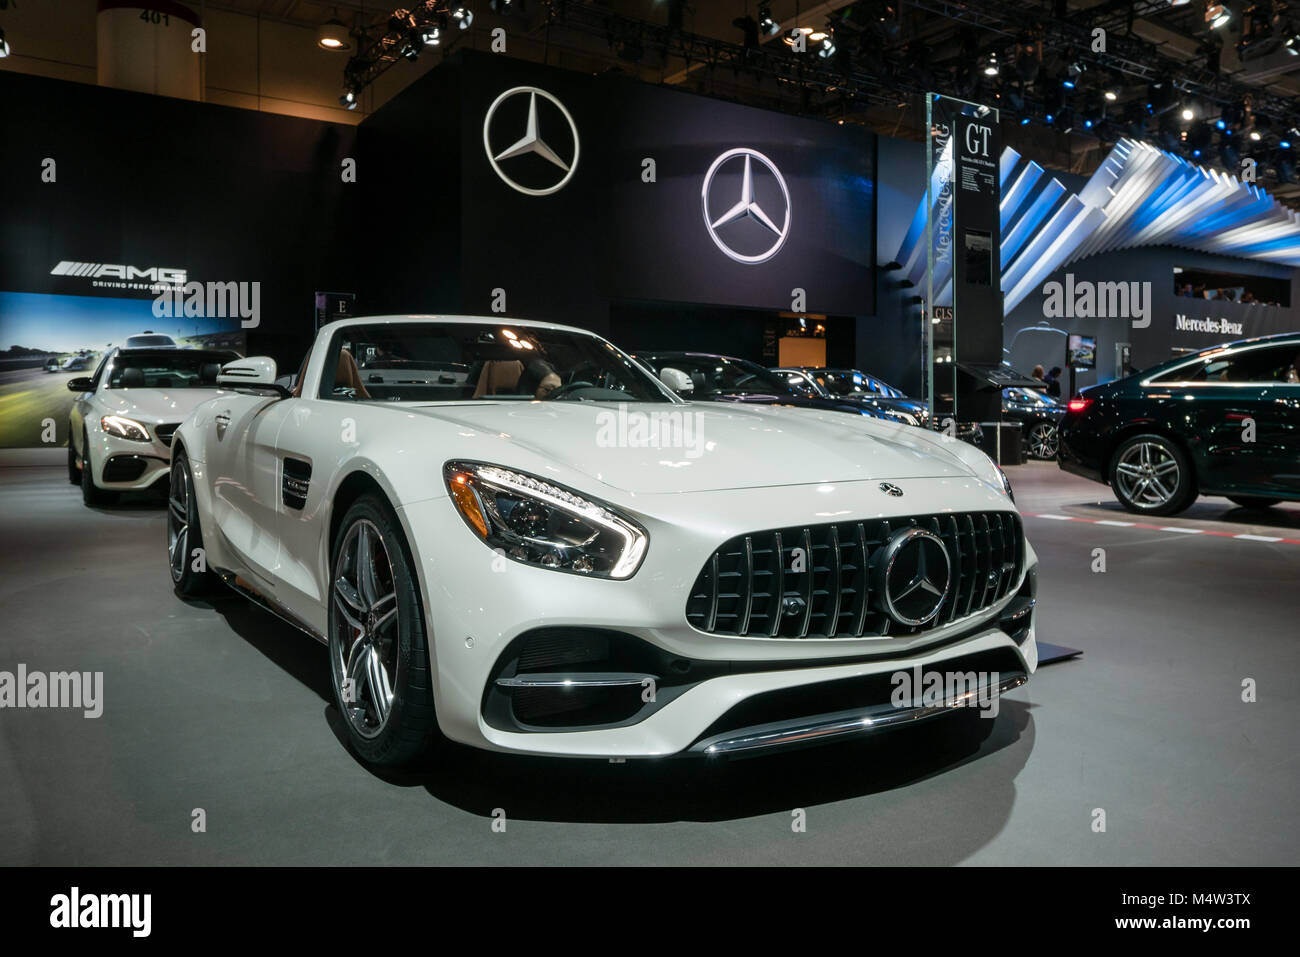 Mercedes Benz Amg Gt Roadster White At A Car Show Stock Photo Alamy